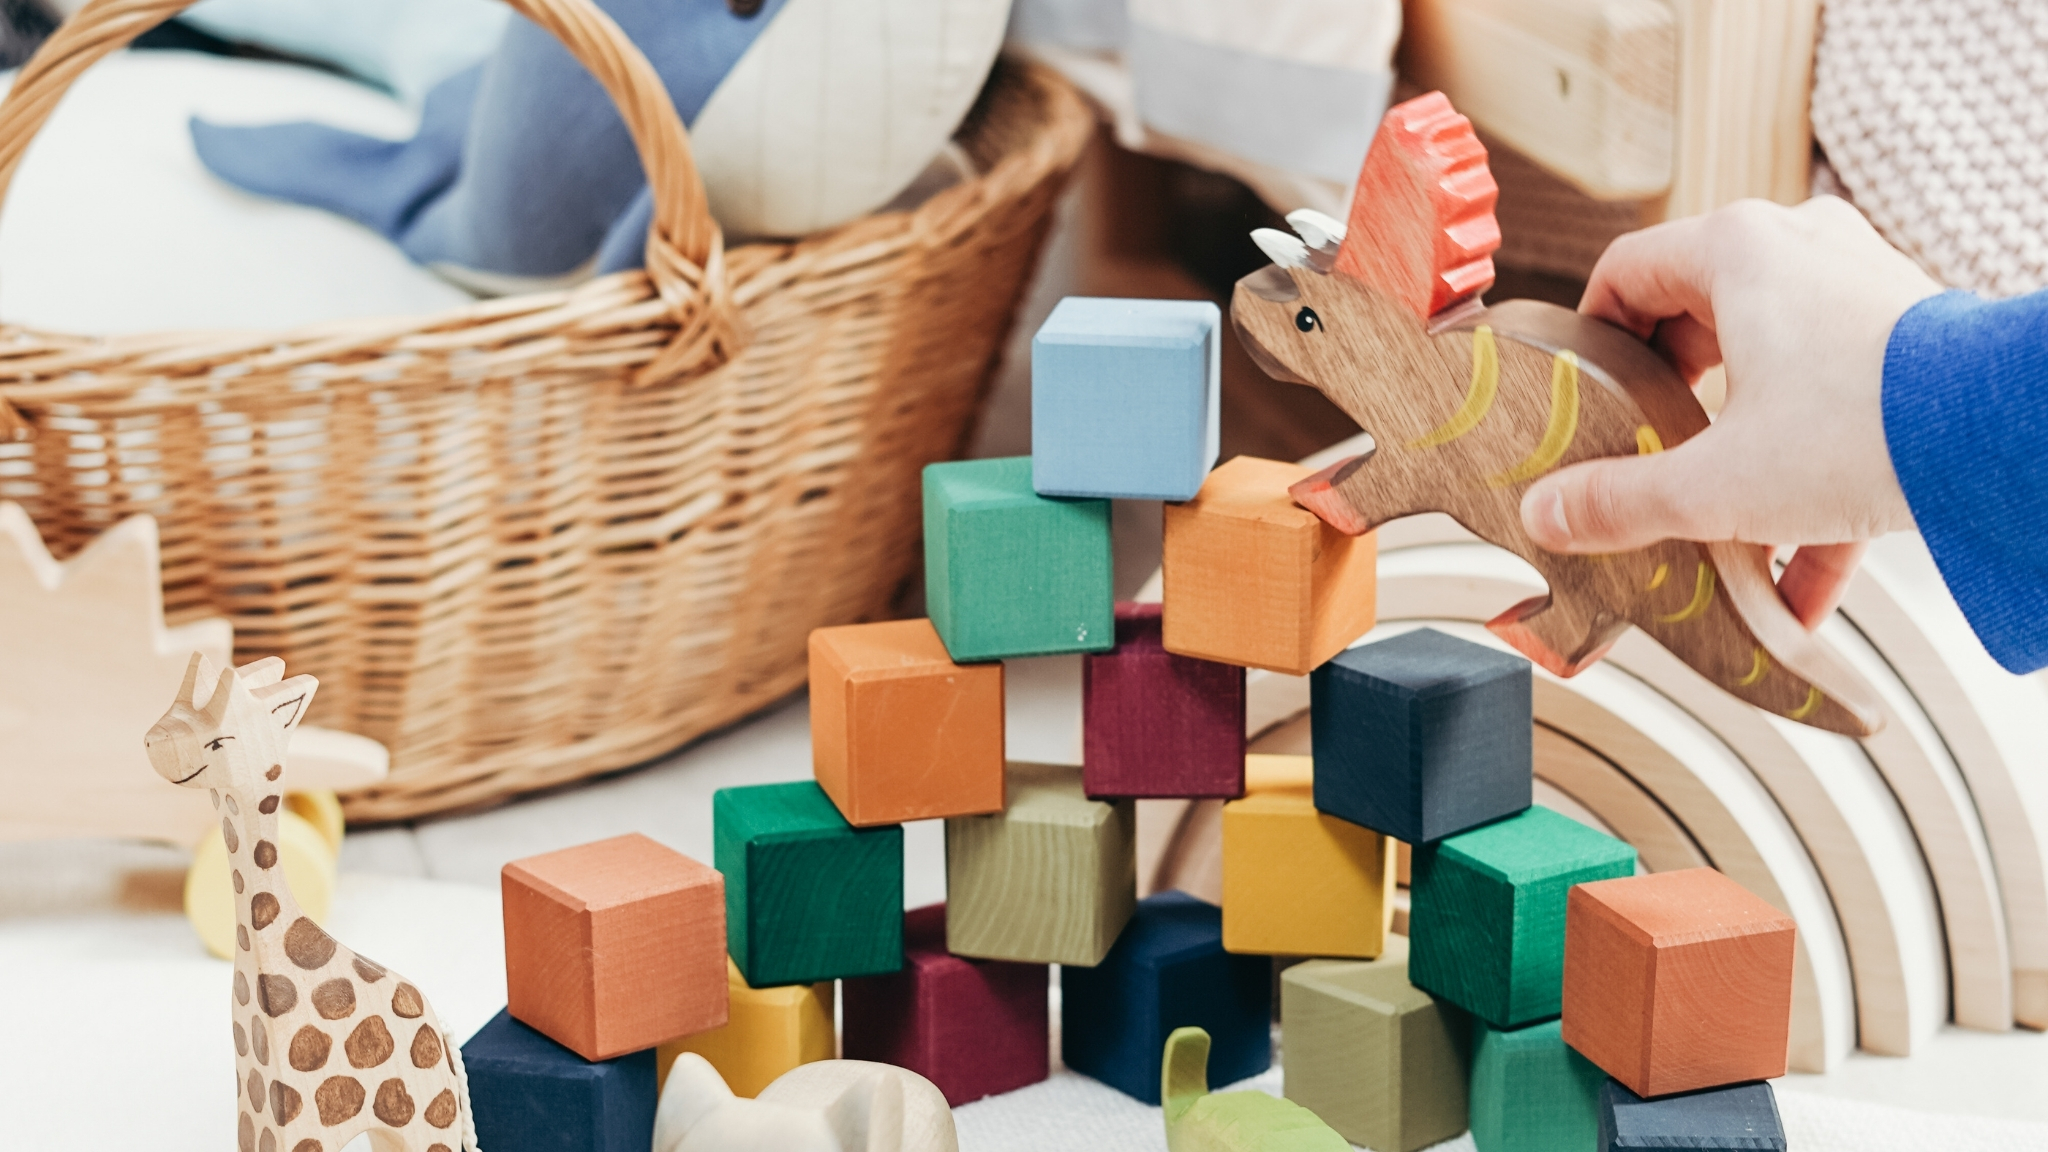 20 wooden toy brands that will surprise your child